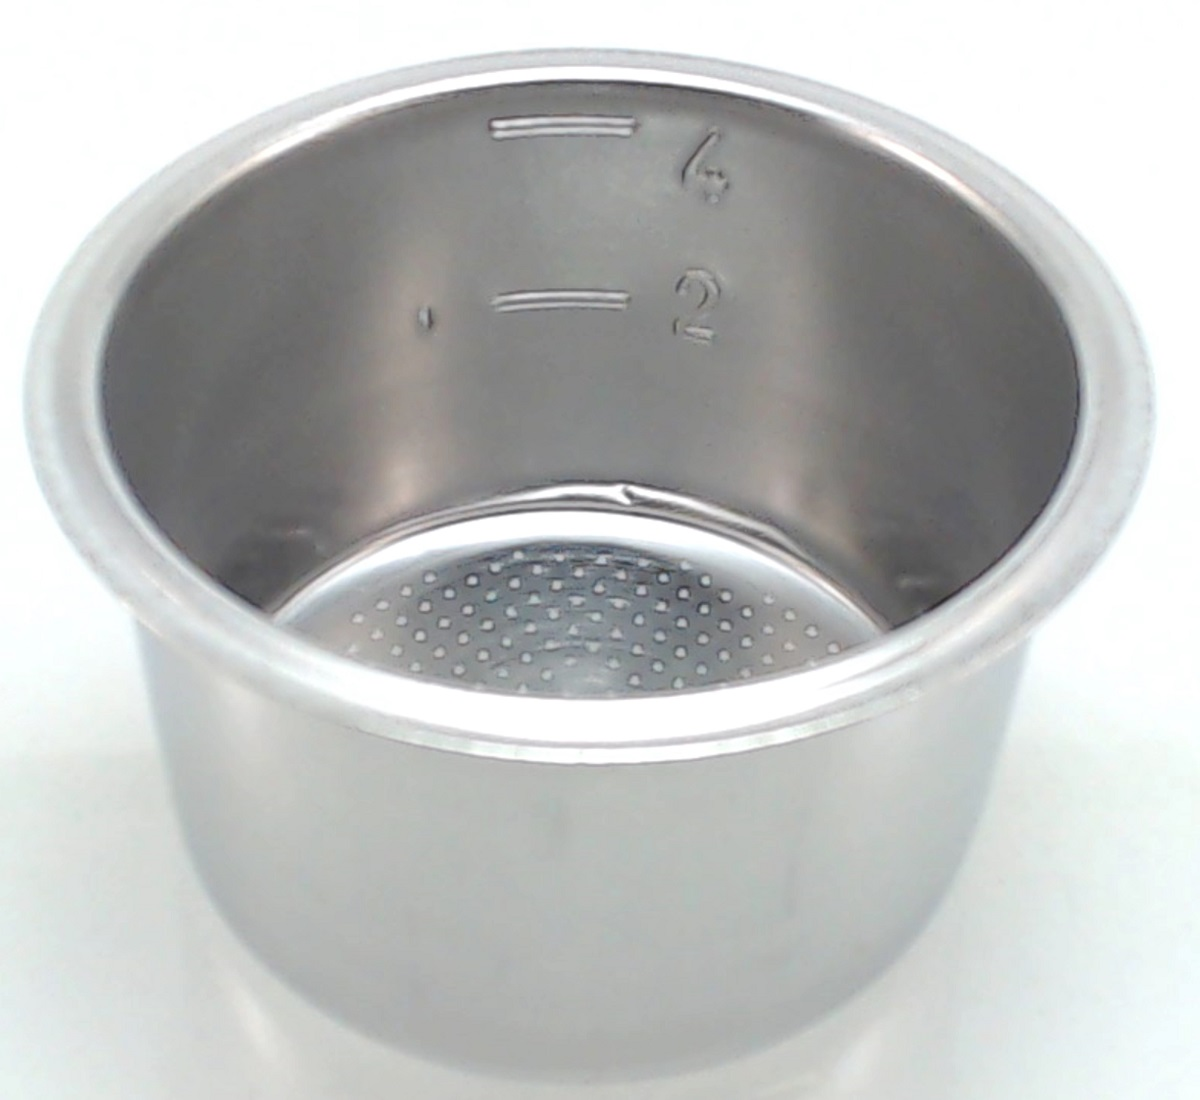 4101 Mr Coffee Espresso Maker Filter Basket